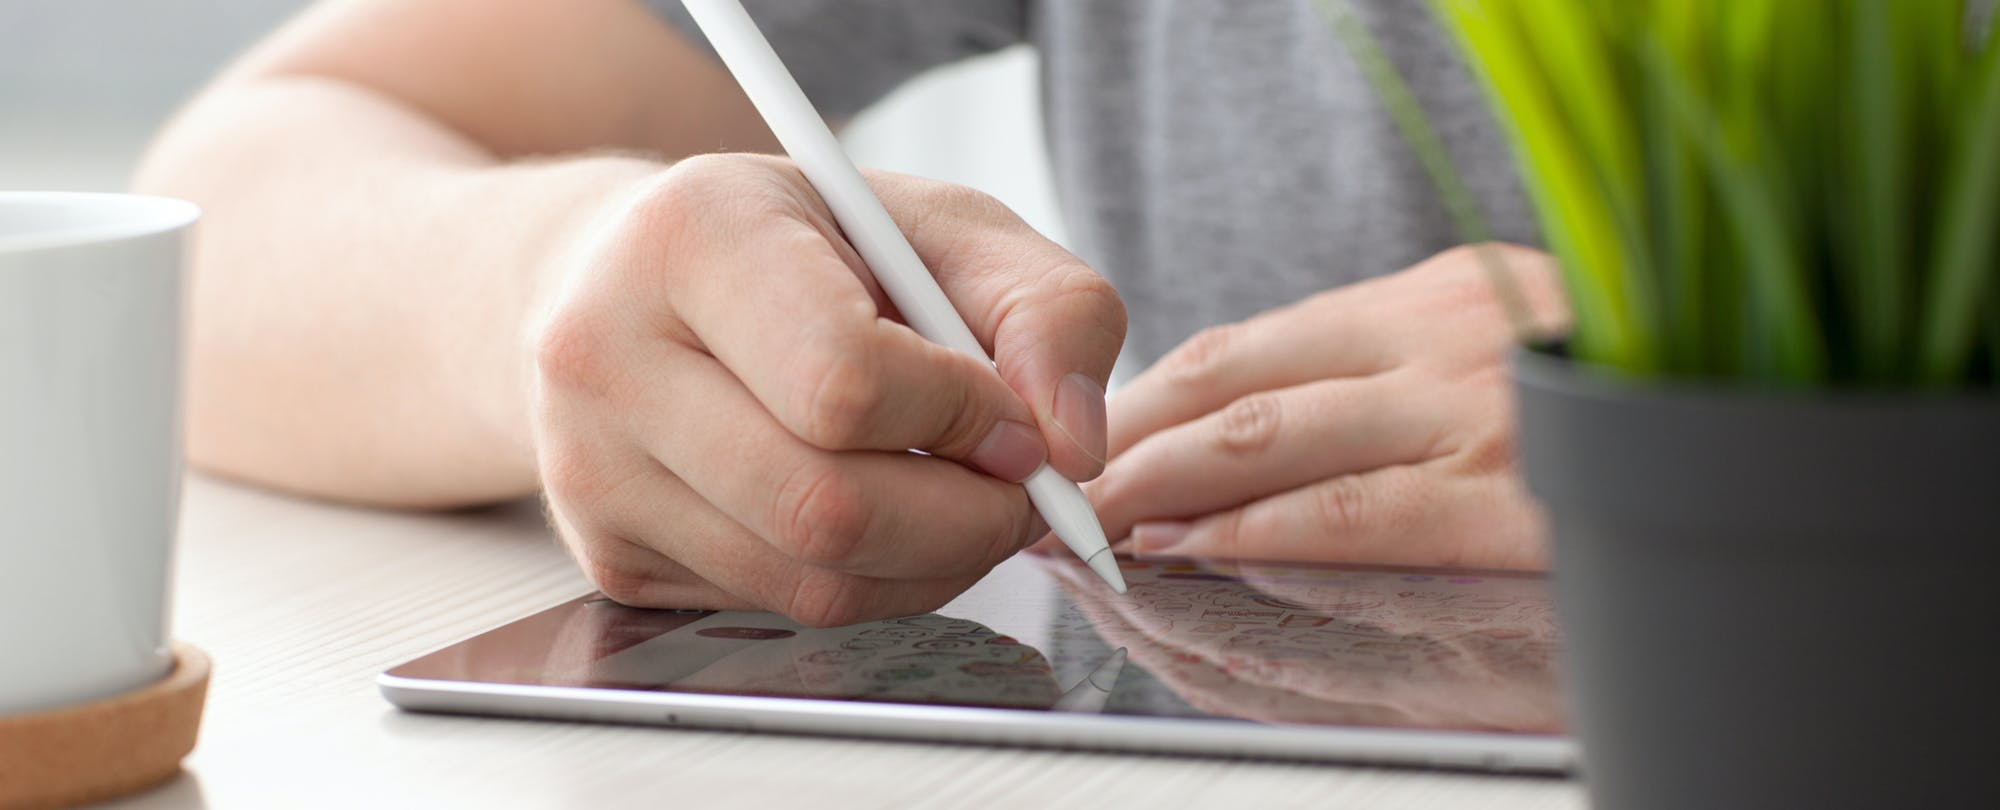 ​Ohio State Will Give Incoming Students iPads. But Do Tablet Programs Work?